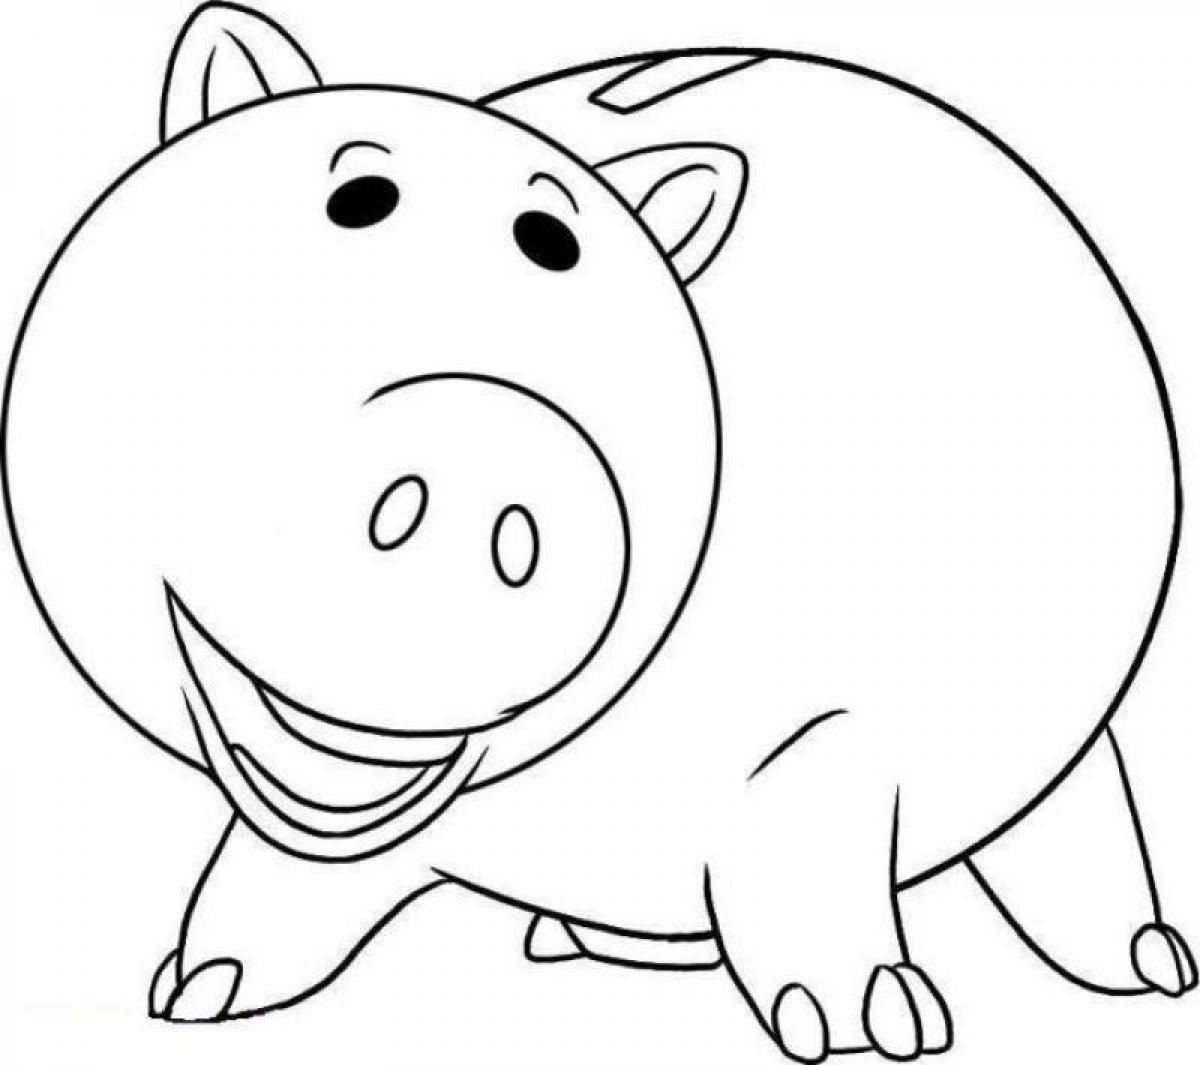 toy story hamm coloring page toy story hamm da stampare e colorare page story toy coloring hamm